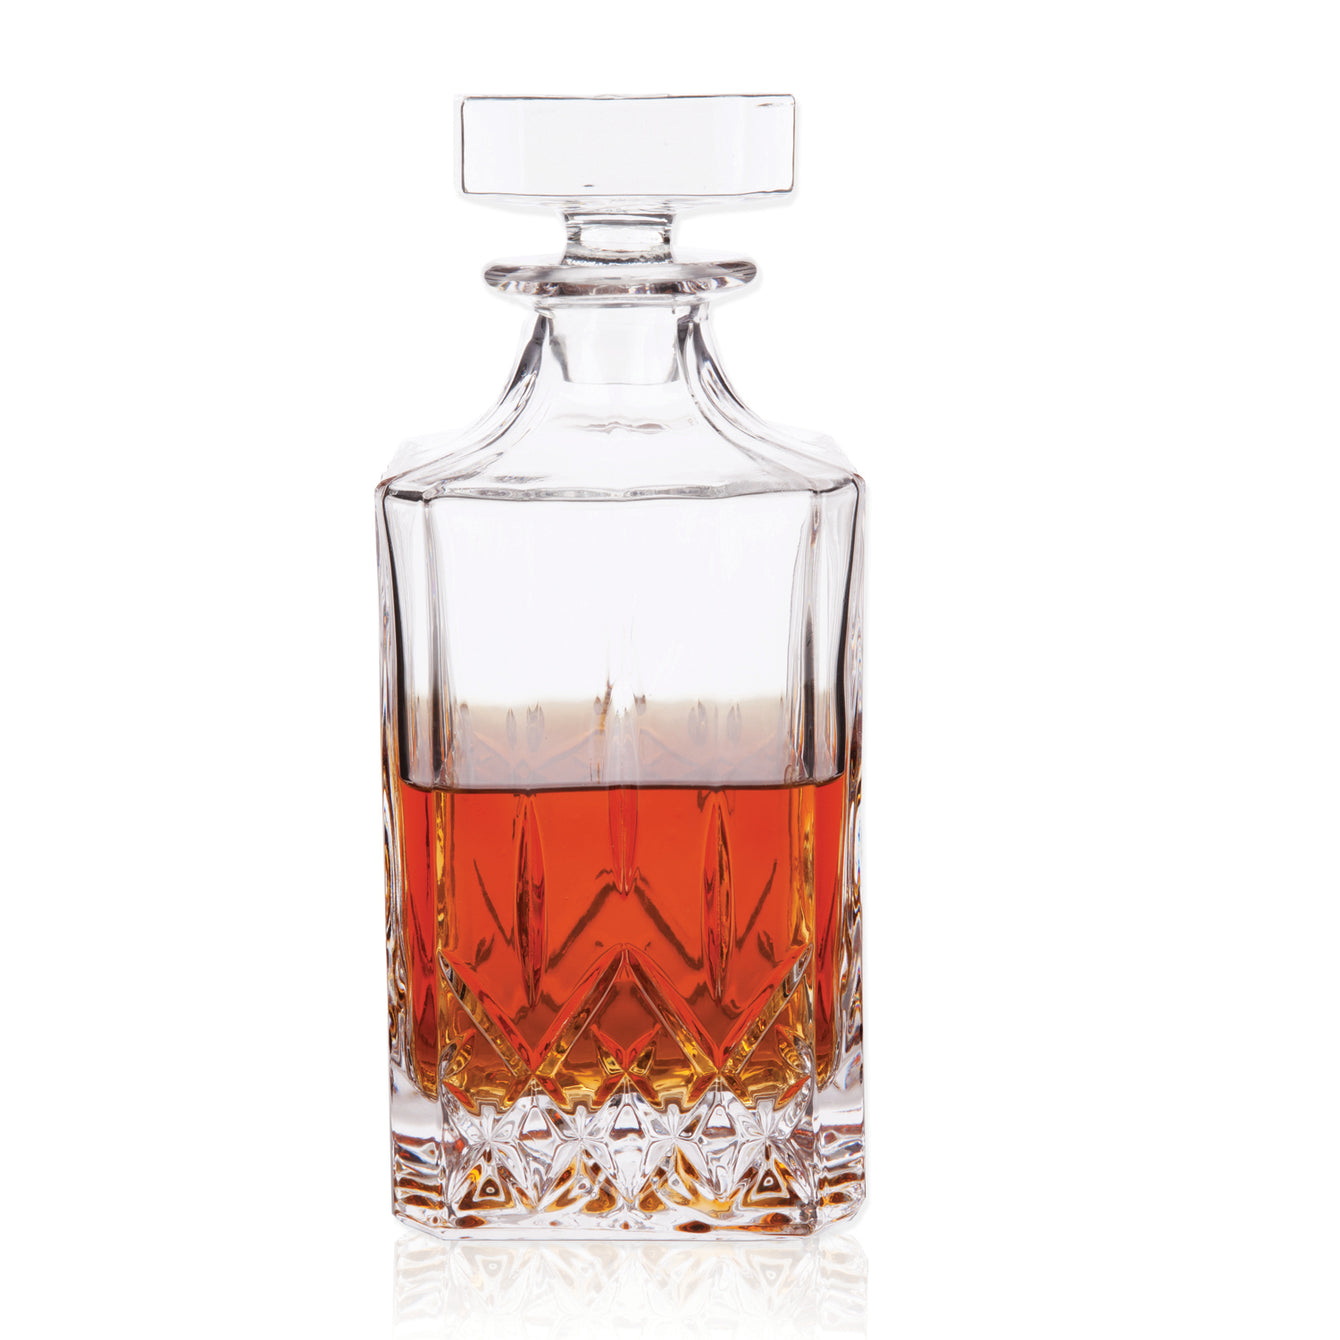 Admiral Liquor Decanter-Home - entertaining - decanters - holiday-VISKI-Peccadilly